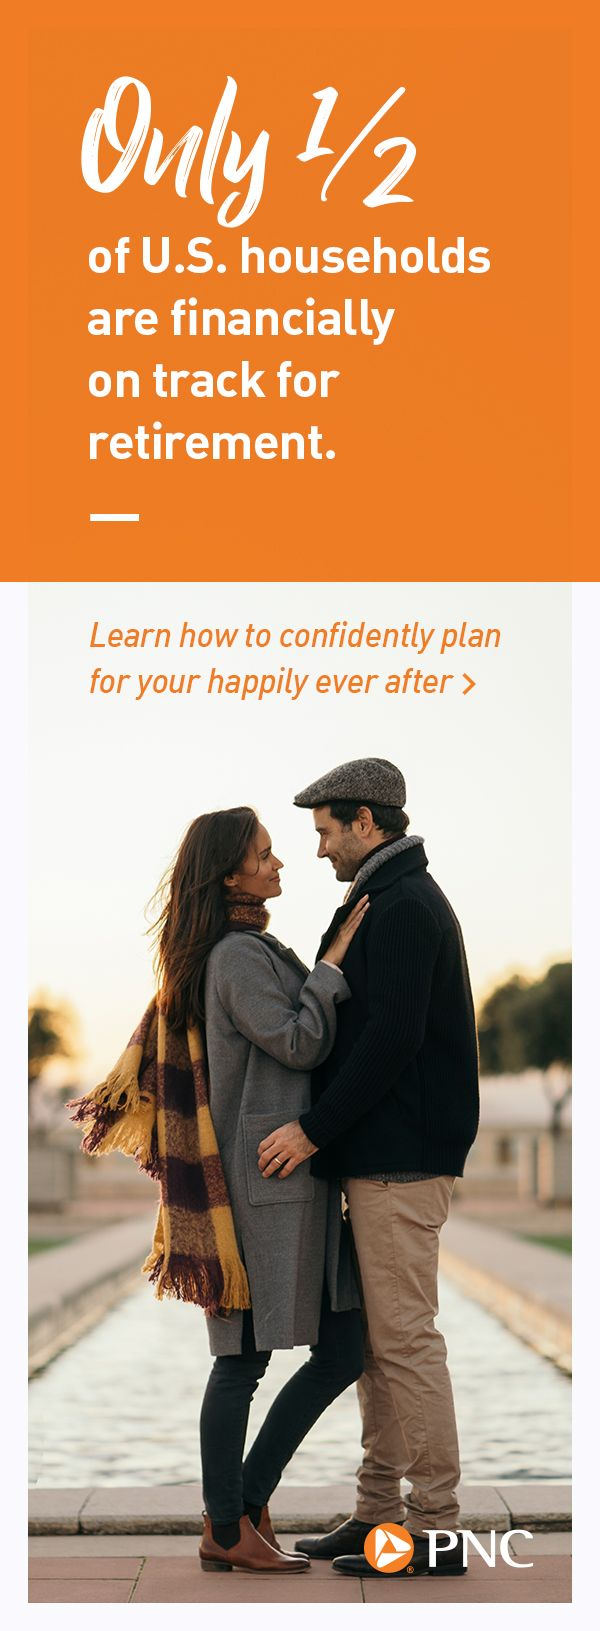 Retirement may not be top of mind when you're a newlywed, but it's